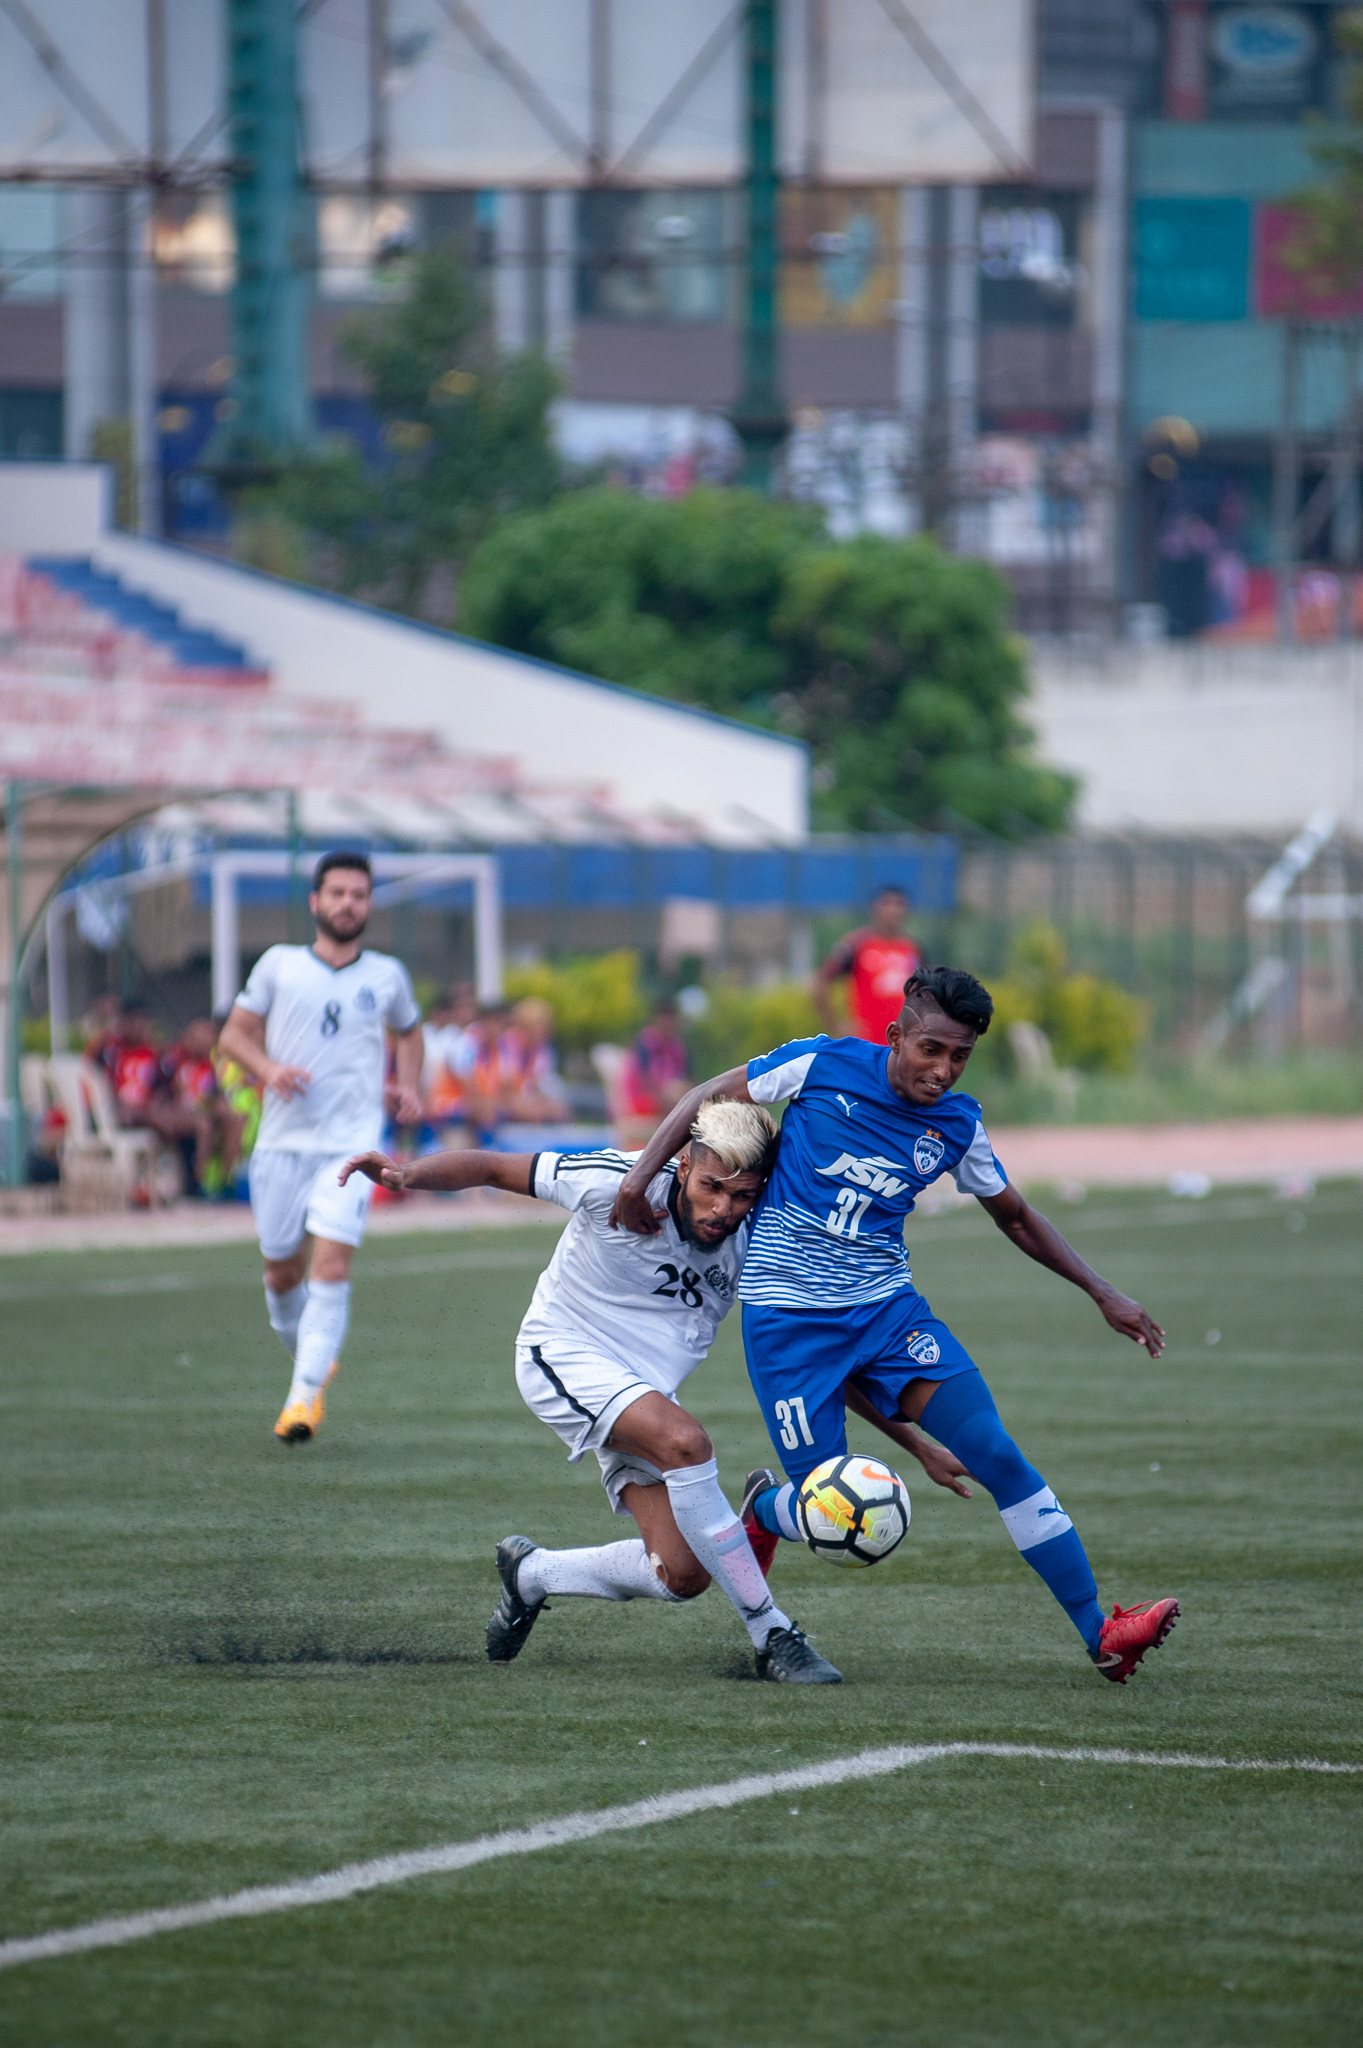 Leon Augustine tussles with a Sporting Mohammedan player for the ball on the right wing before firing in a cross.